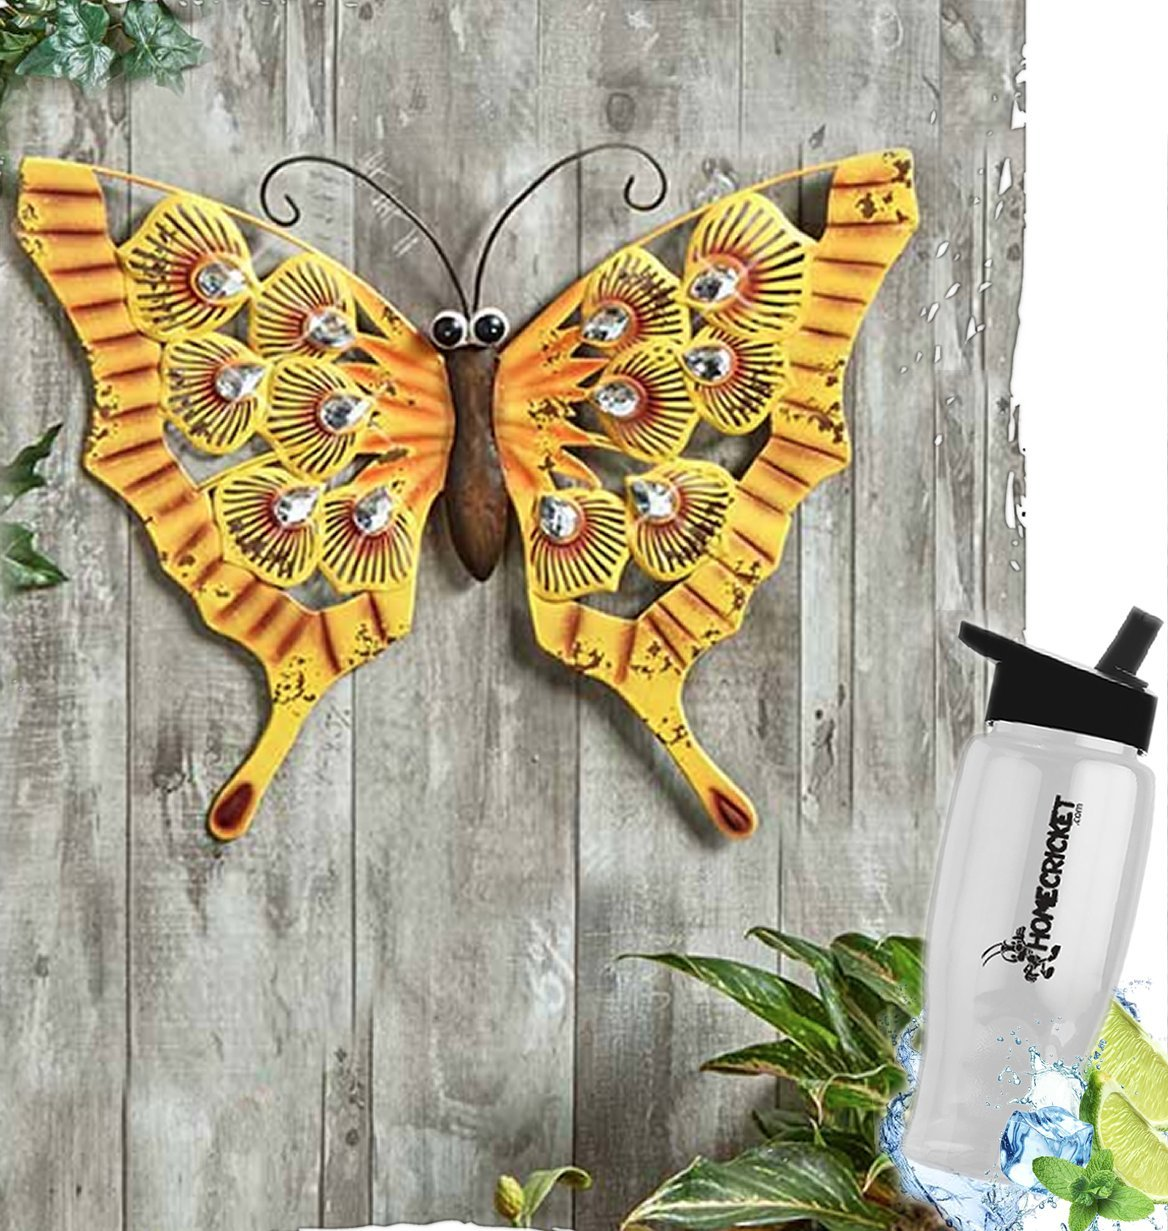 Gift Included- Embellished Jewels Wall Or Fence Butterfly Decor Accent Display Decorations + FREE Bonus Water Bottle by Home Cricket Homecricket